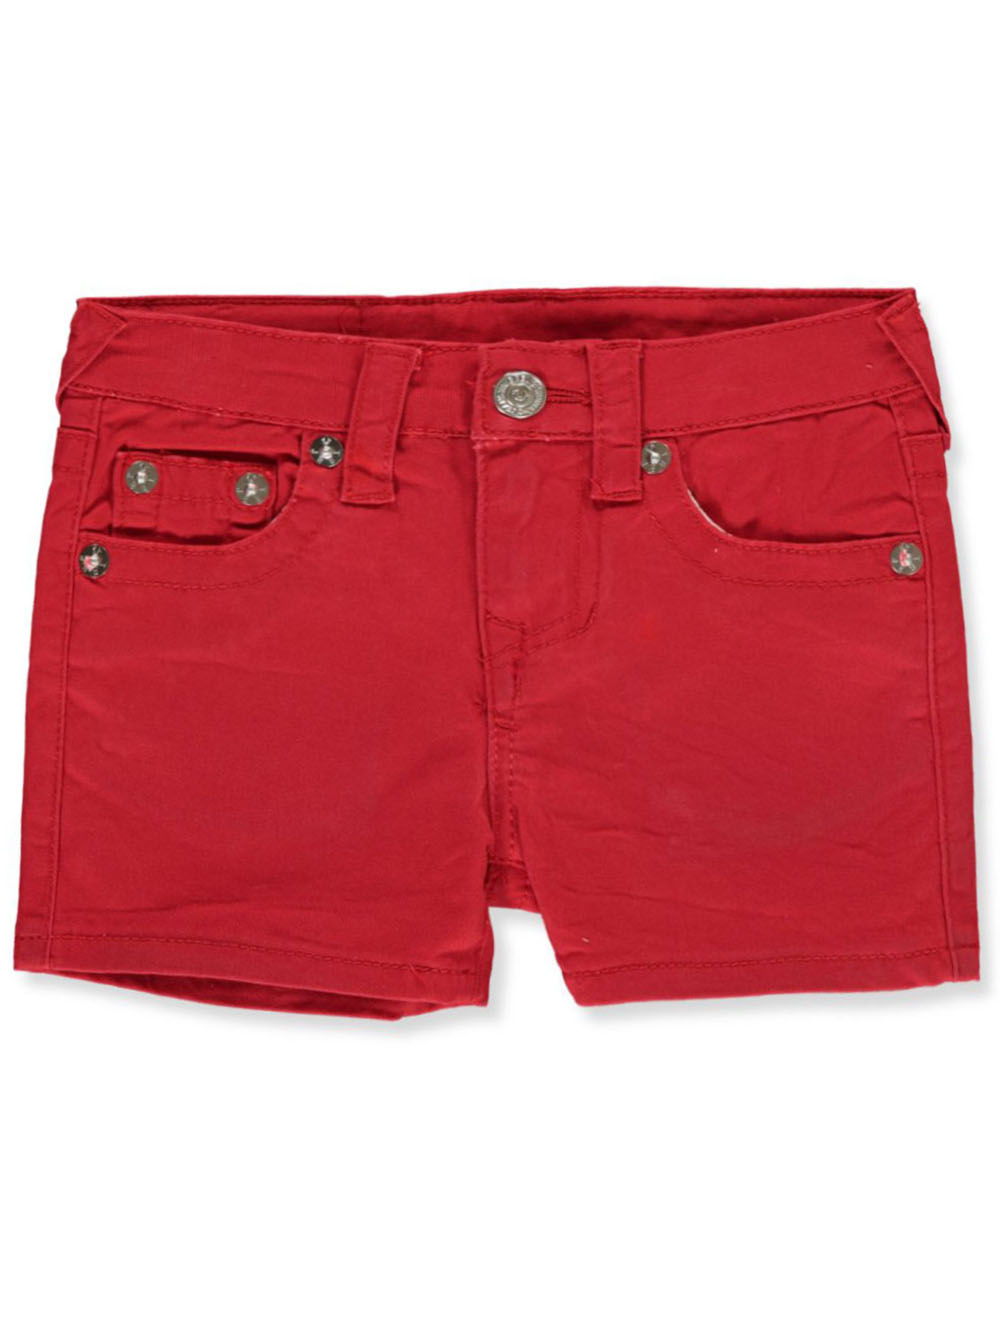 Girls Red Shorts